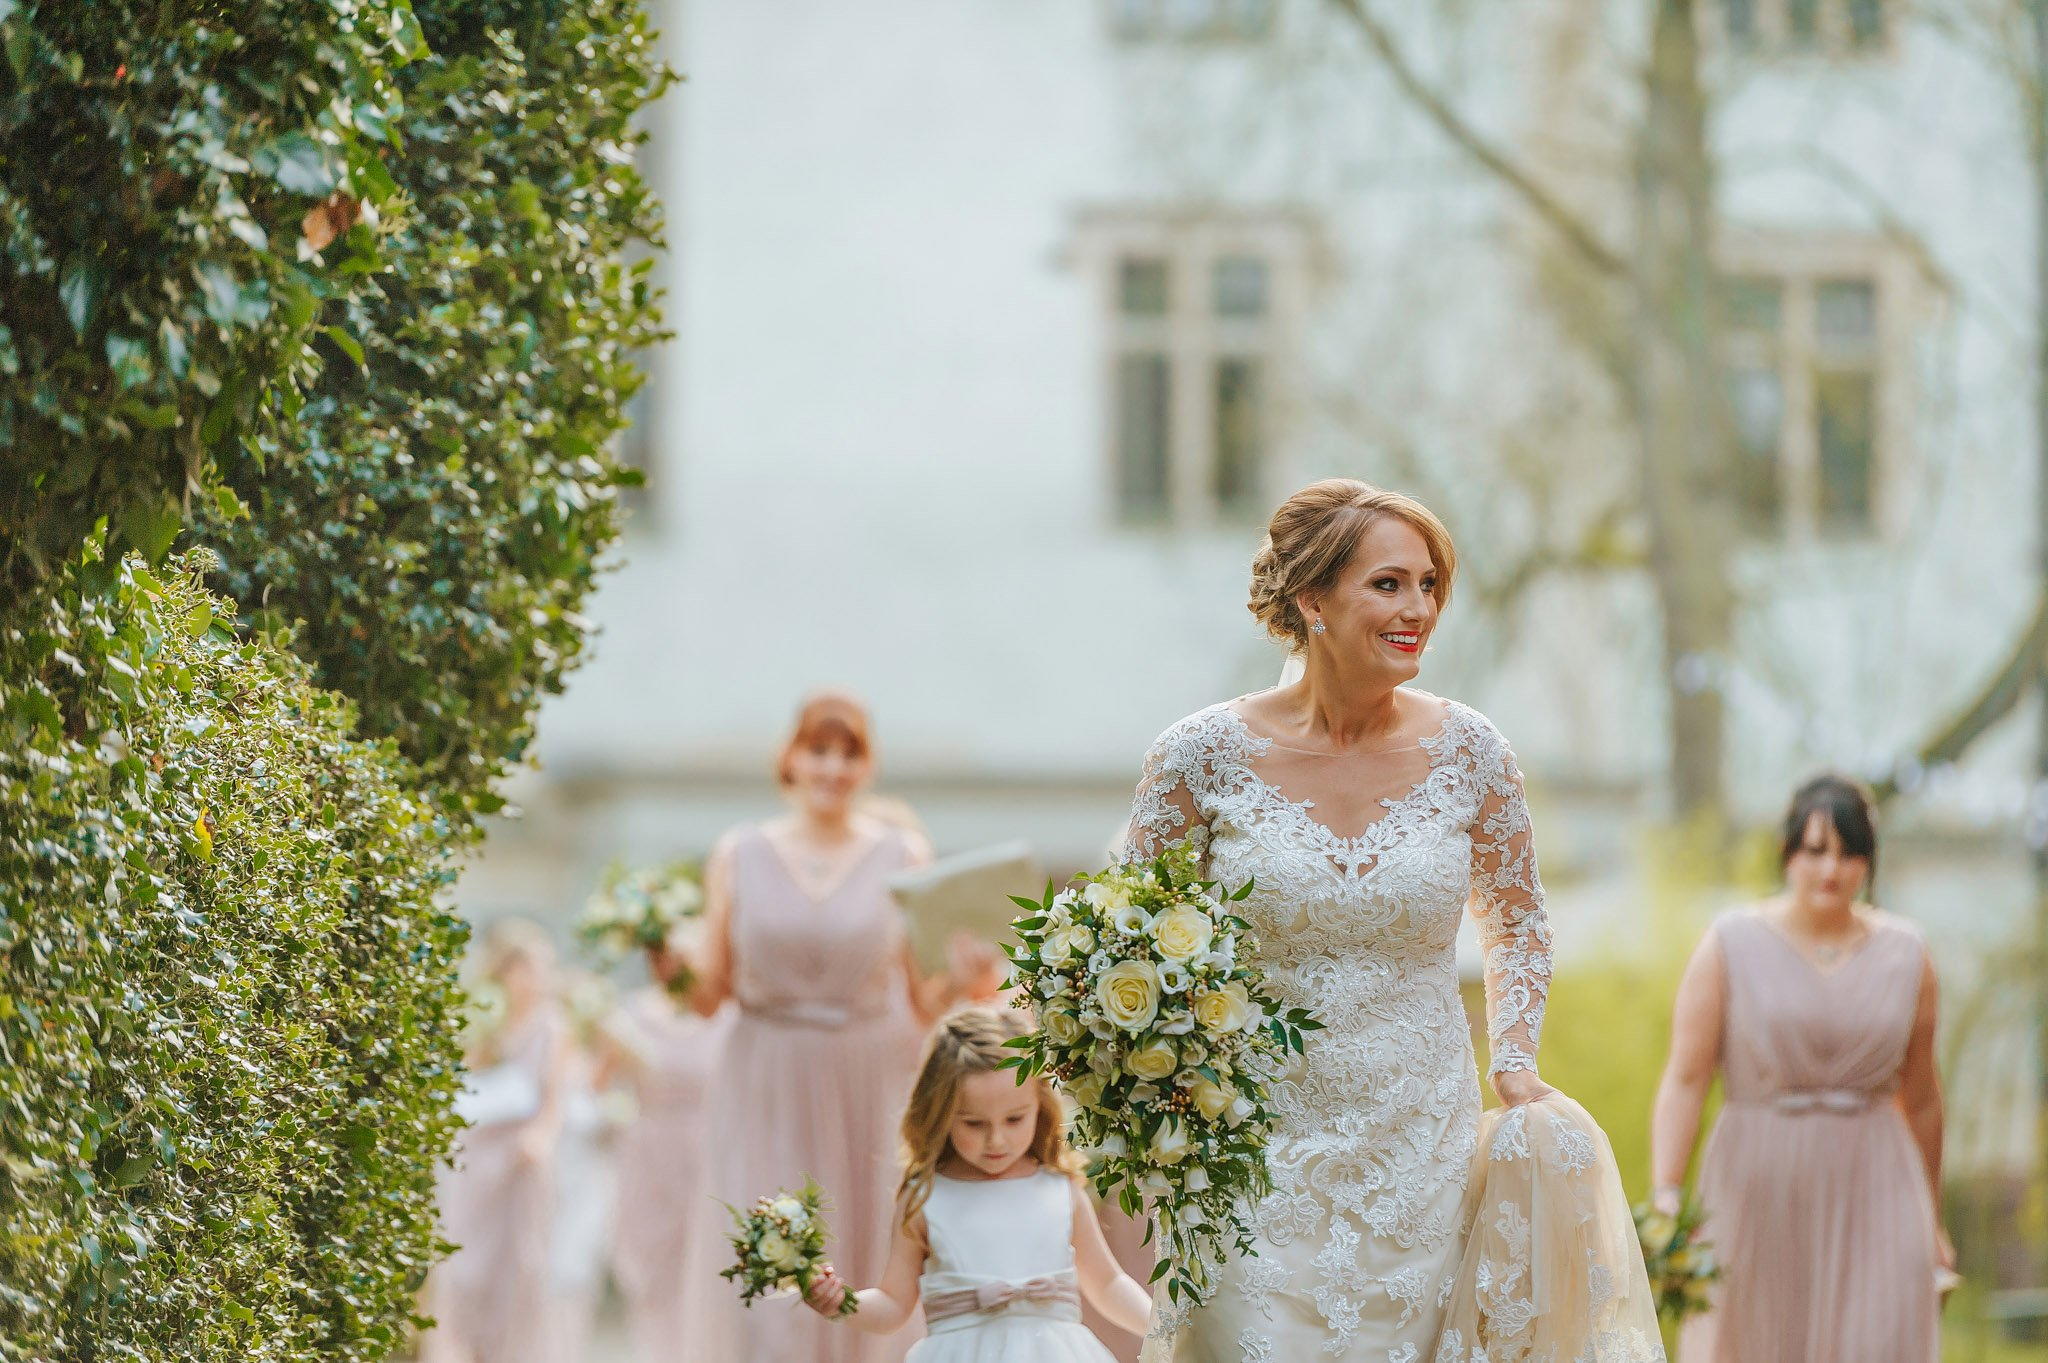 Coombe Abbey wedding in Coventry, Warwickshire - Sam + Matt 15